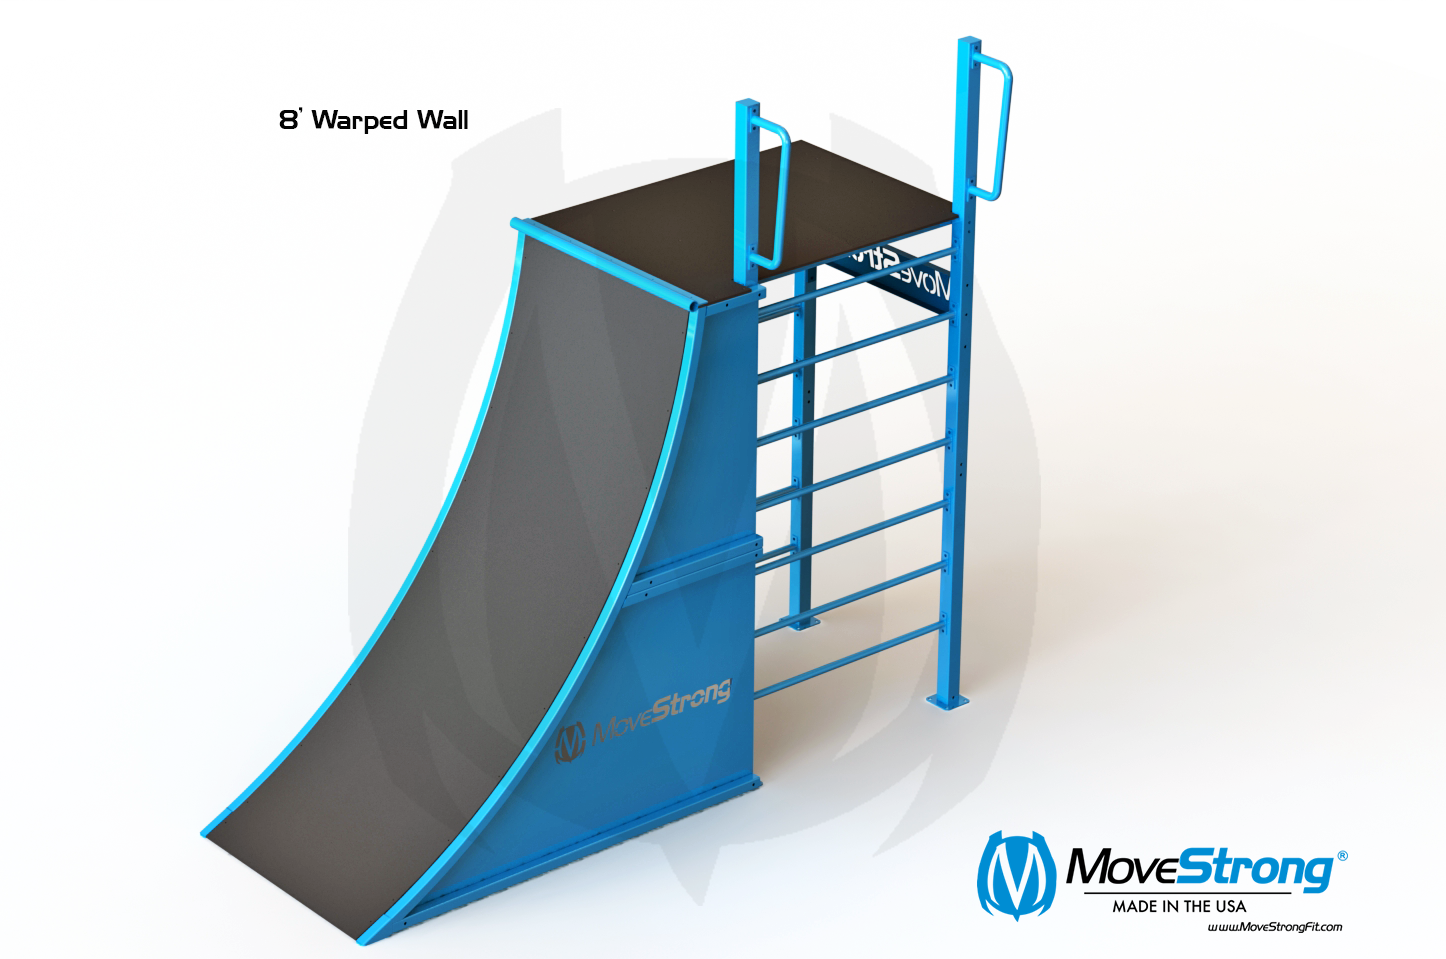 8' Warped Wall MoveStrong